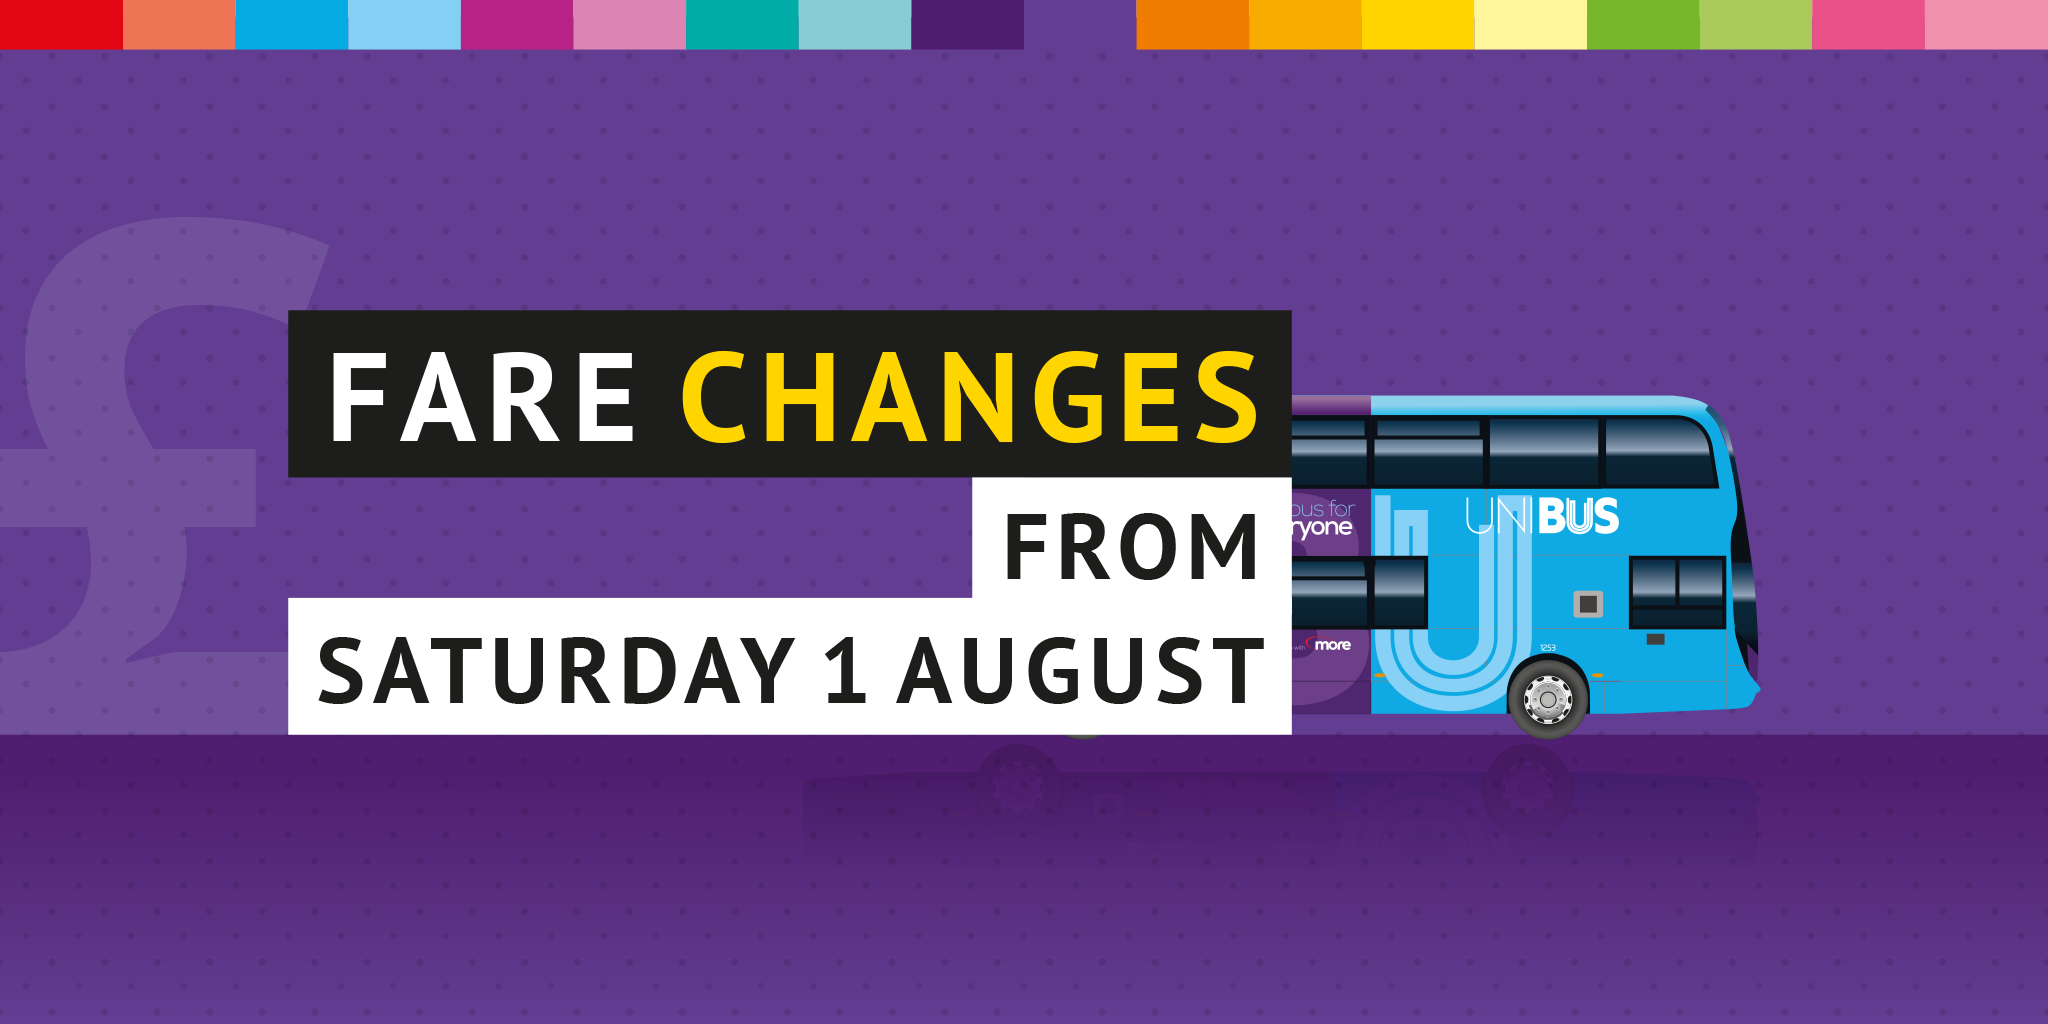 Image reading 'Fare changes from Saturday 1 August'